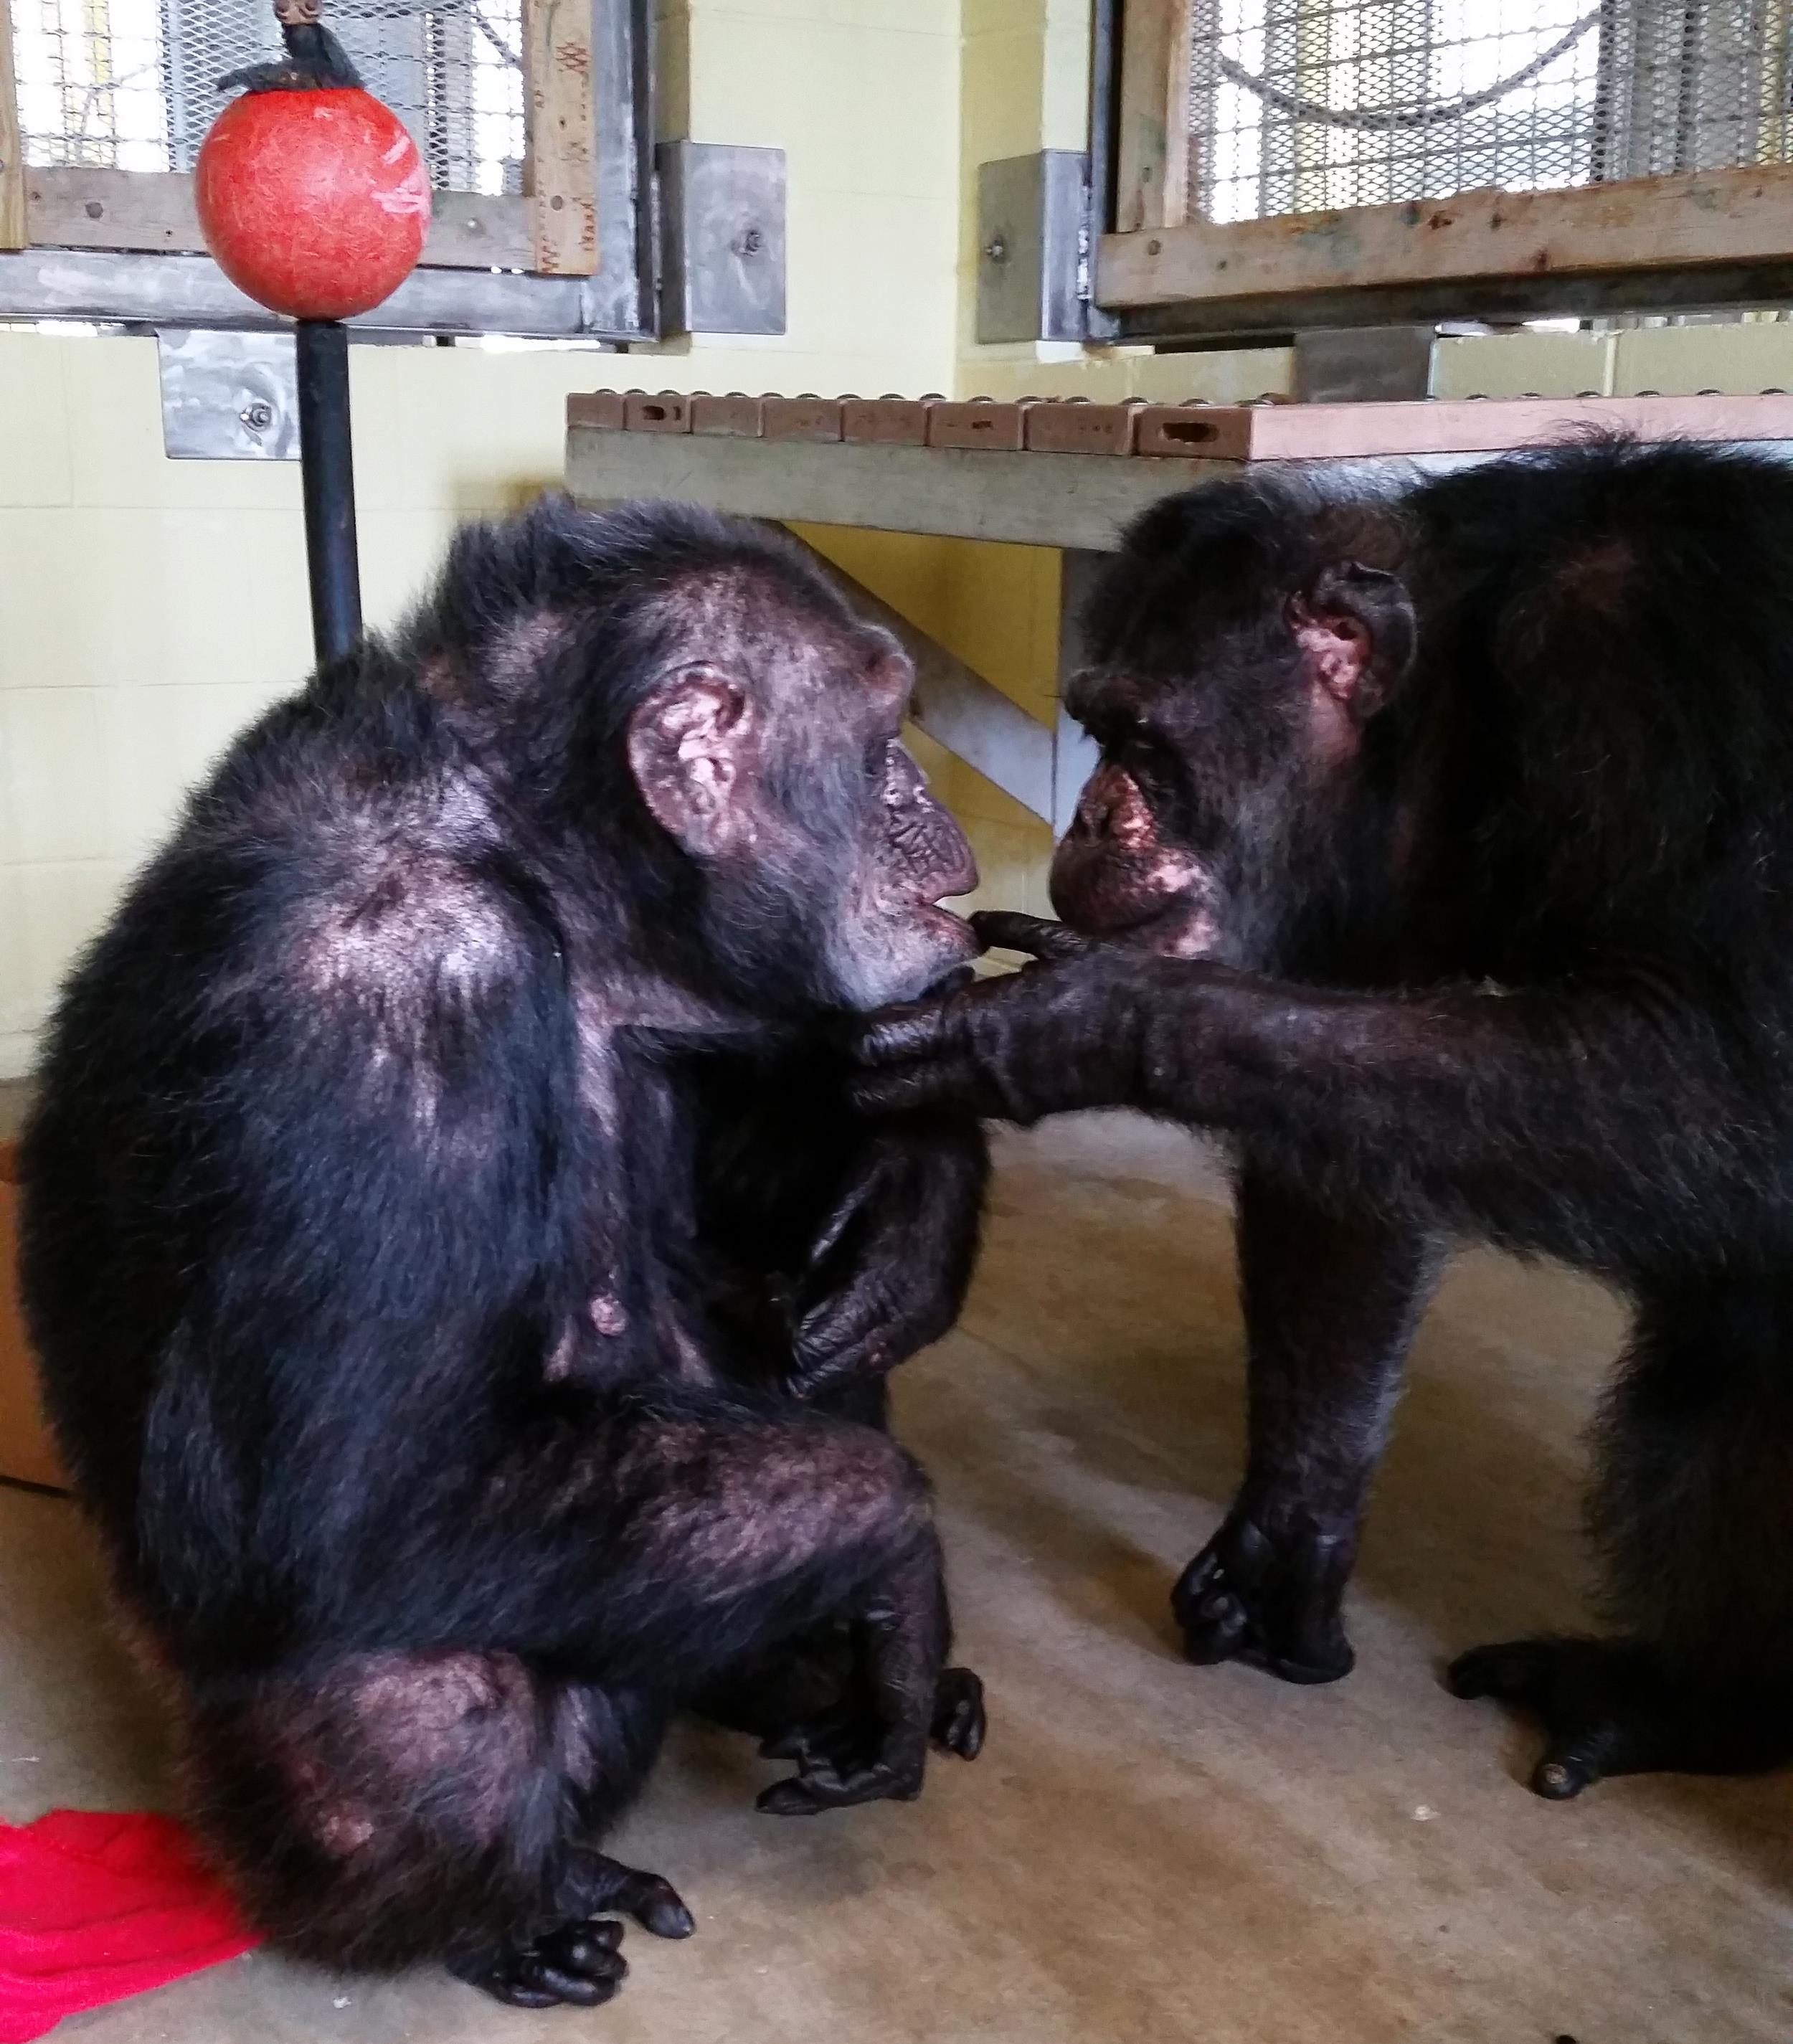 Iris, who did not have any chimp friends at a Georgia zoo, meets her new pal Abdul at the Florida sanctuary she now calls home.